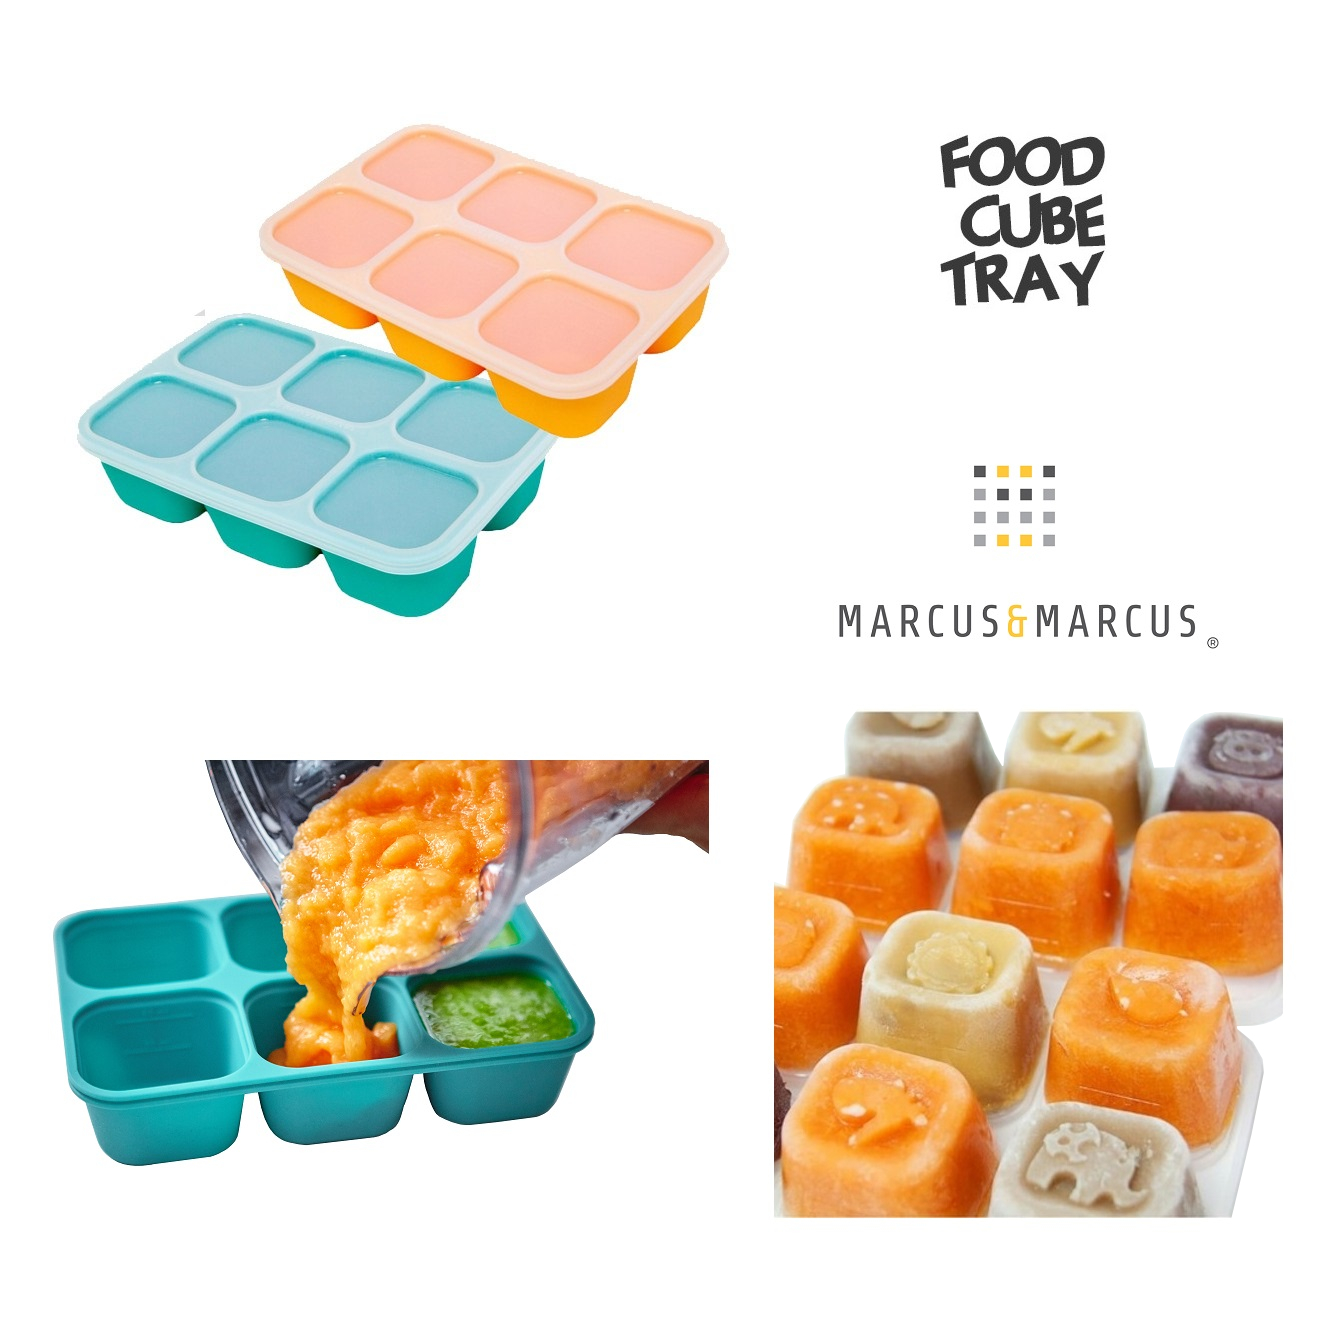 Marcus Marcus Food Cube Tray (1)